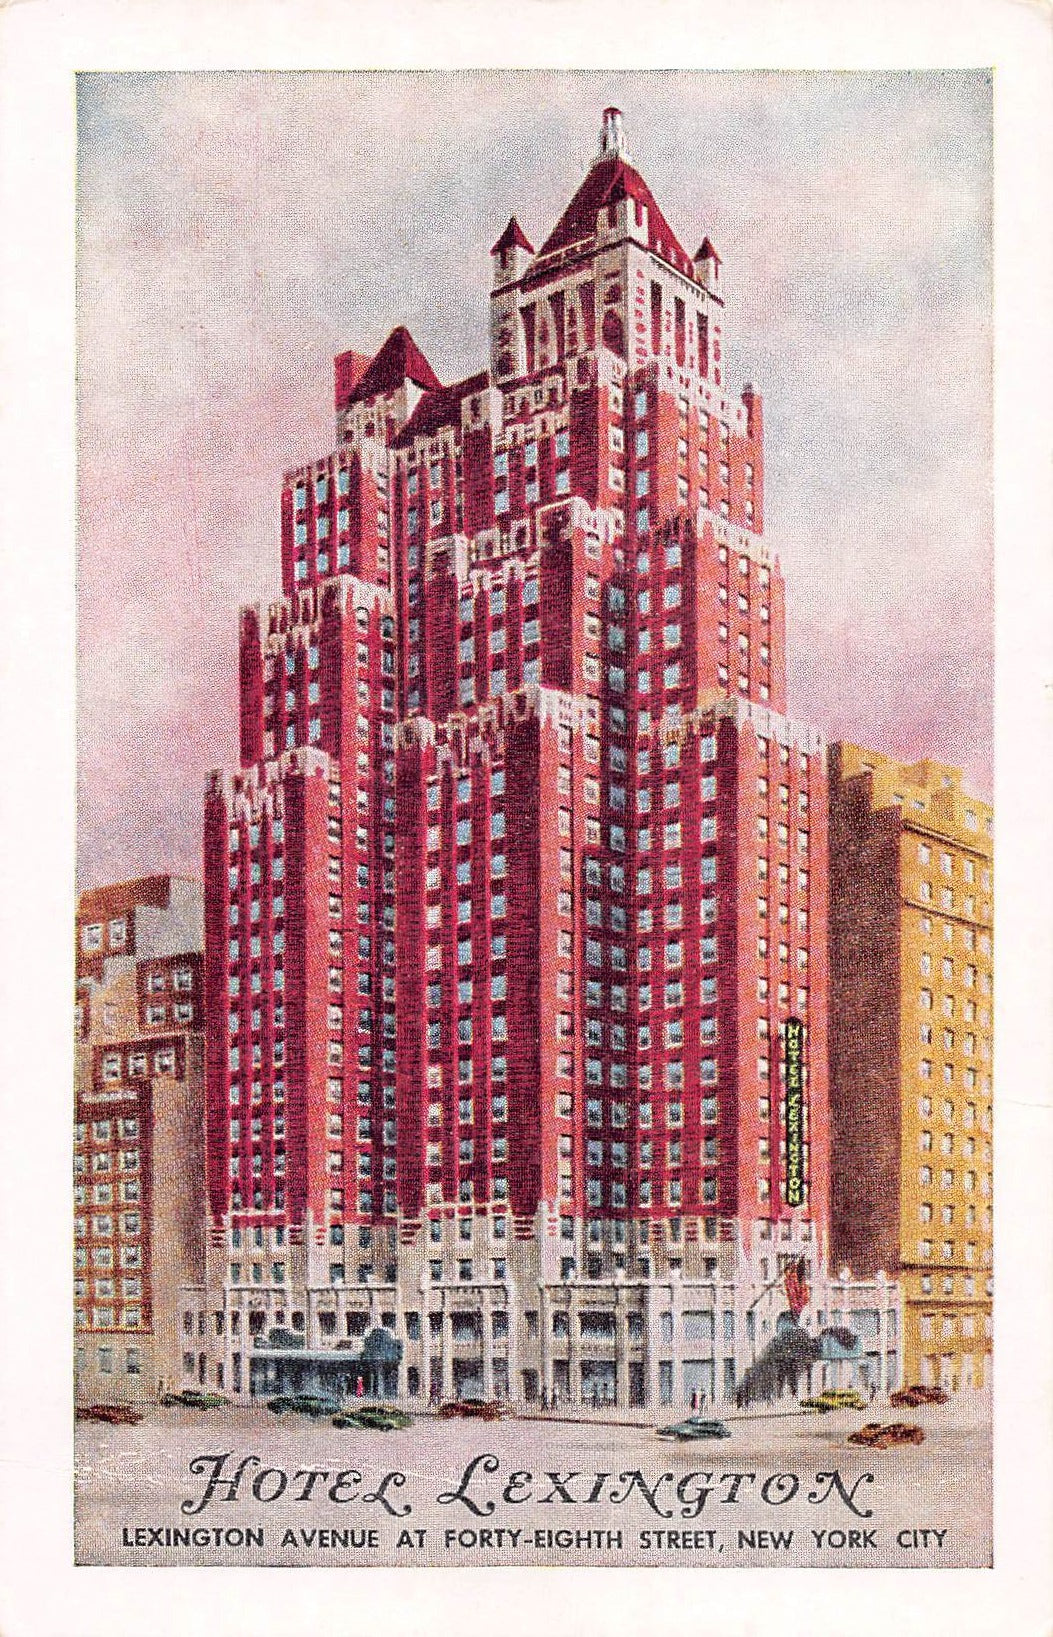 Hotel Lexington, Lexington Ave. at 48th Street, Manhattan, New York City, N.Y., early postcard, unused